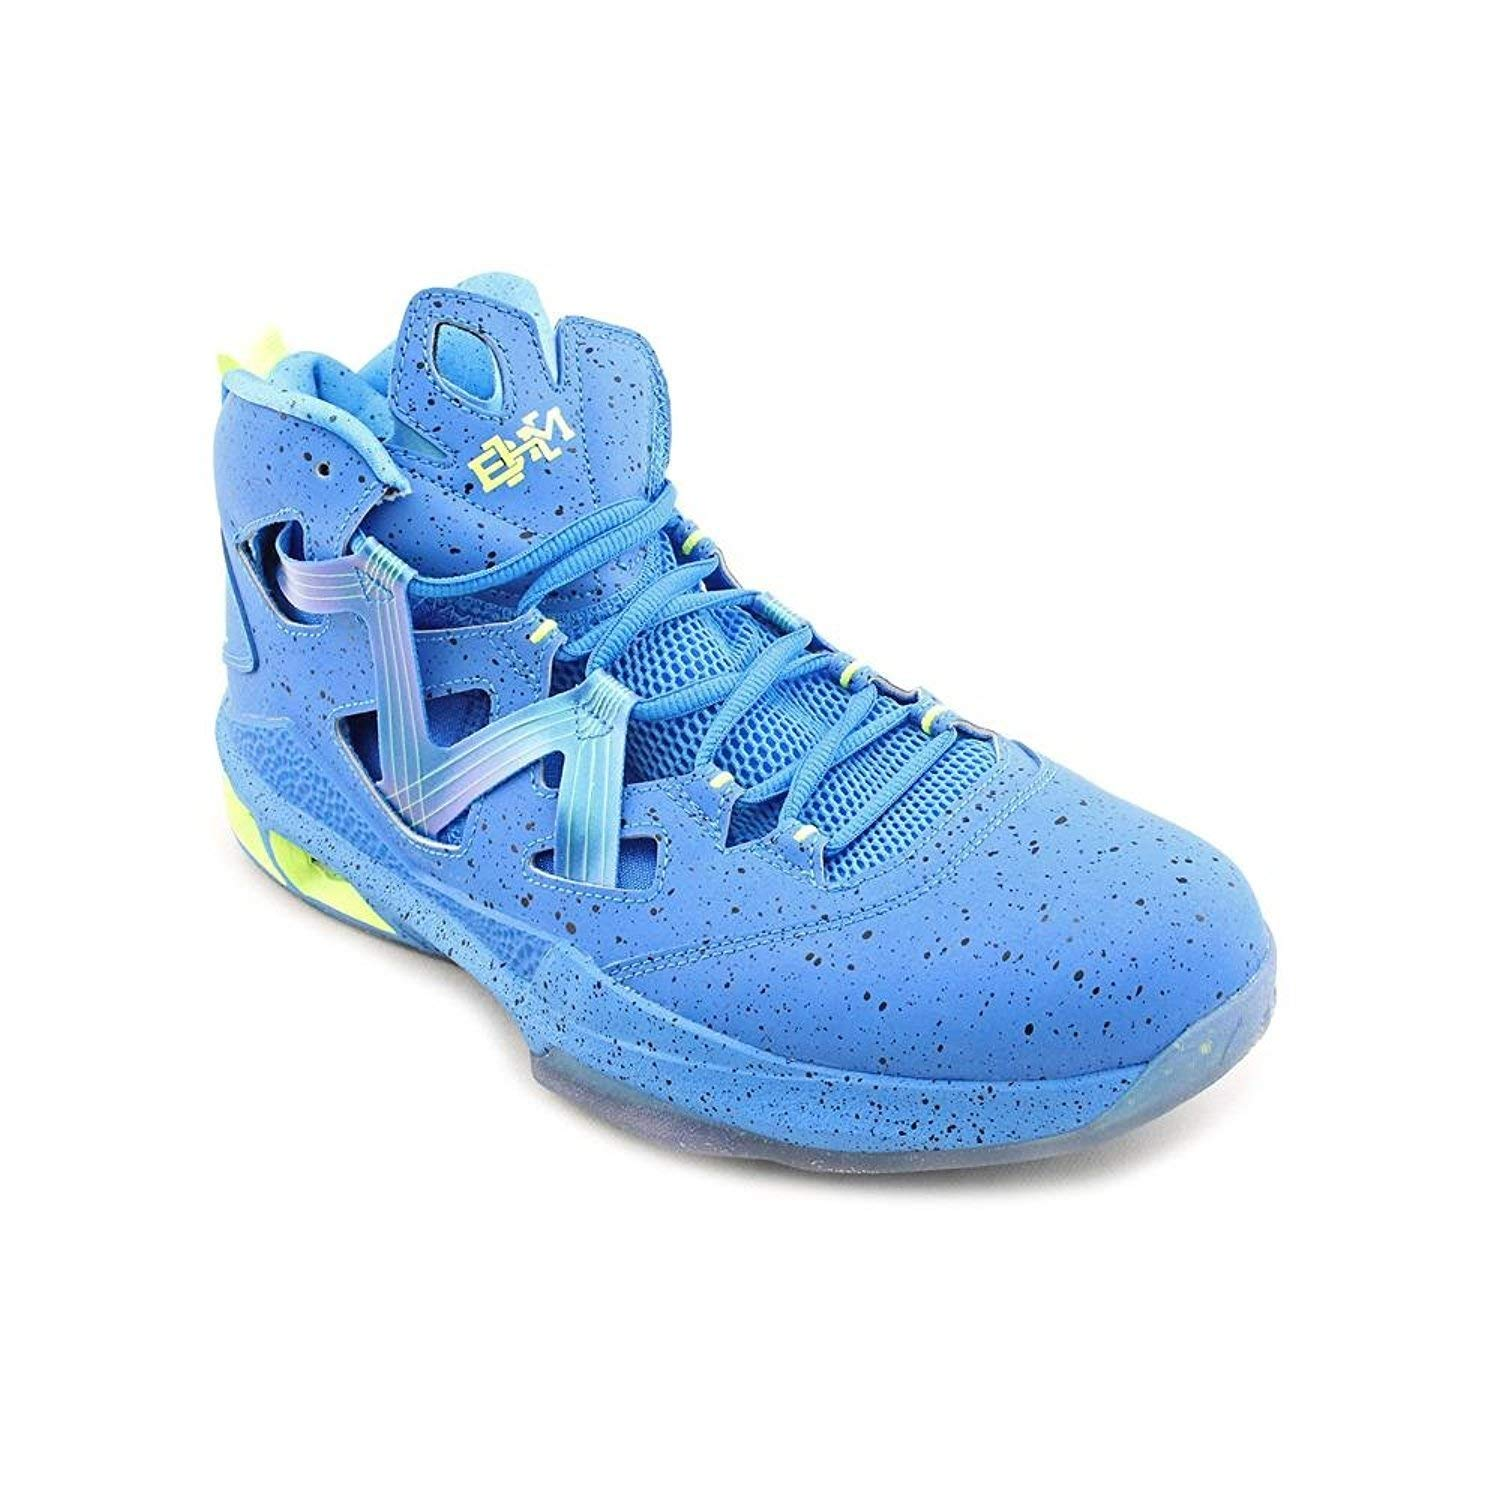 differently 73d75 10c0f Get Quotations · Jordan melo M9 BHM Mens Basketball Shoes